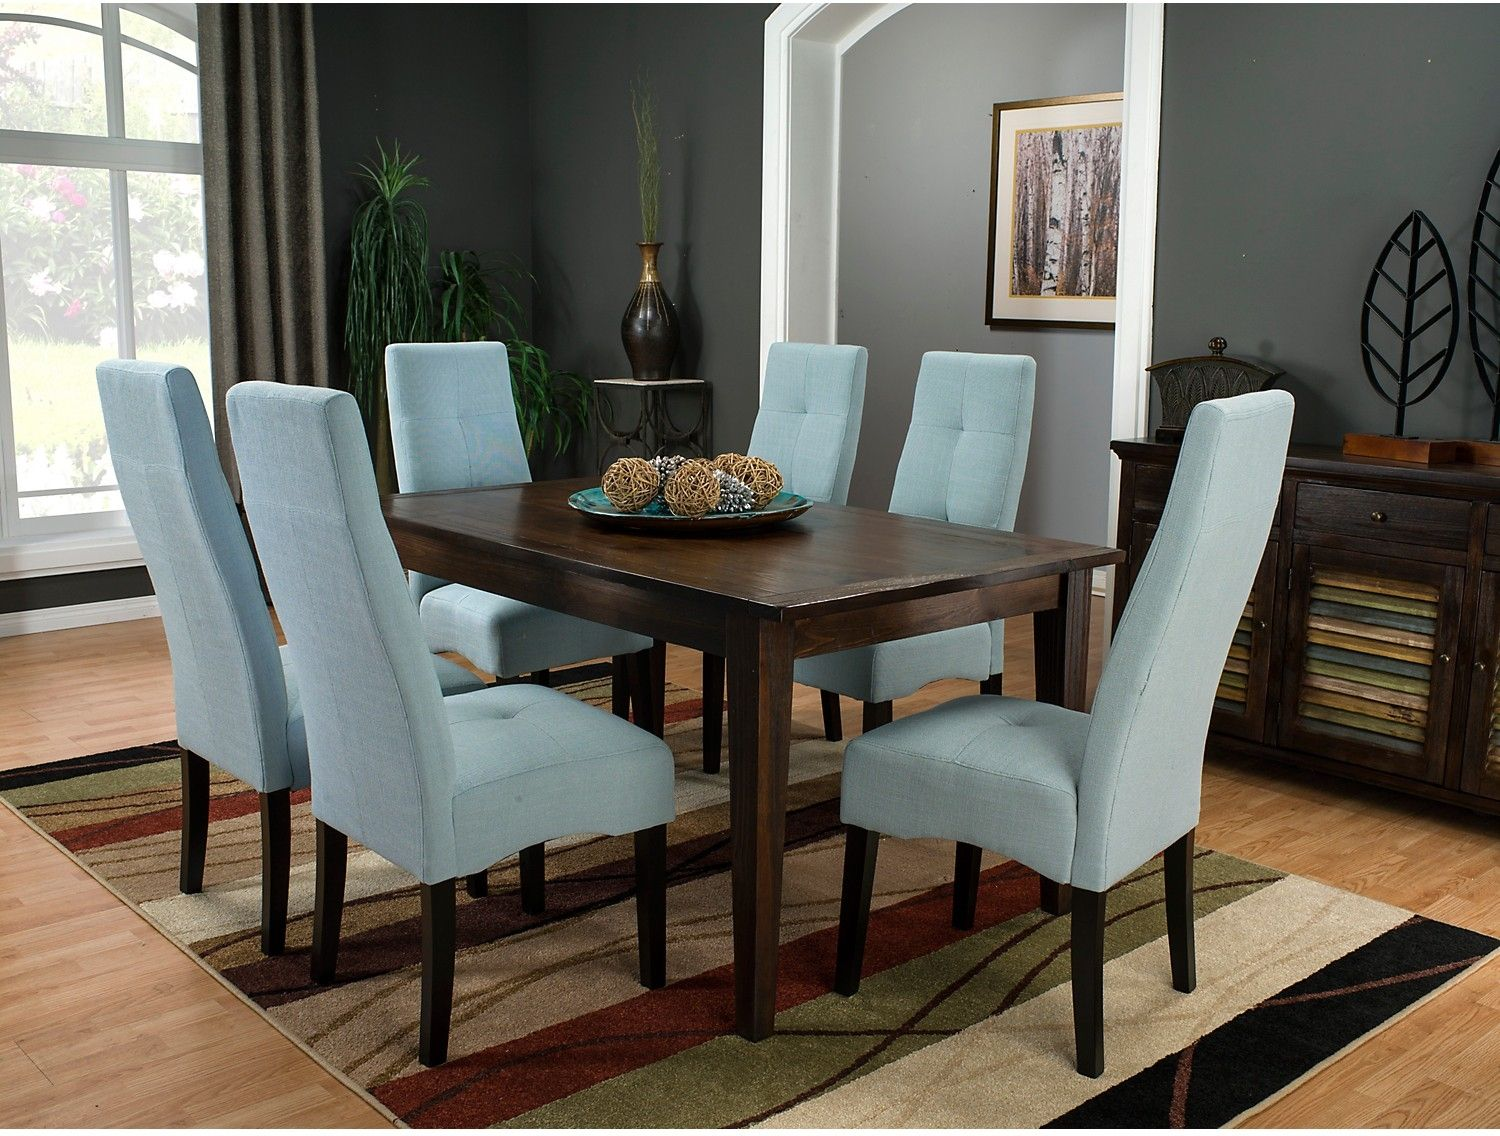 Browse Traditional And Modern Dining Room Sets At Great Prices The Brick